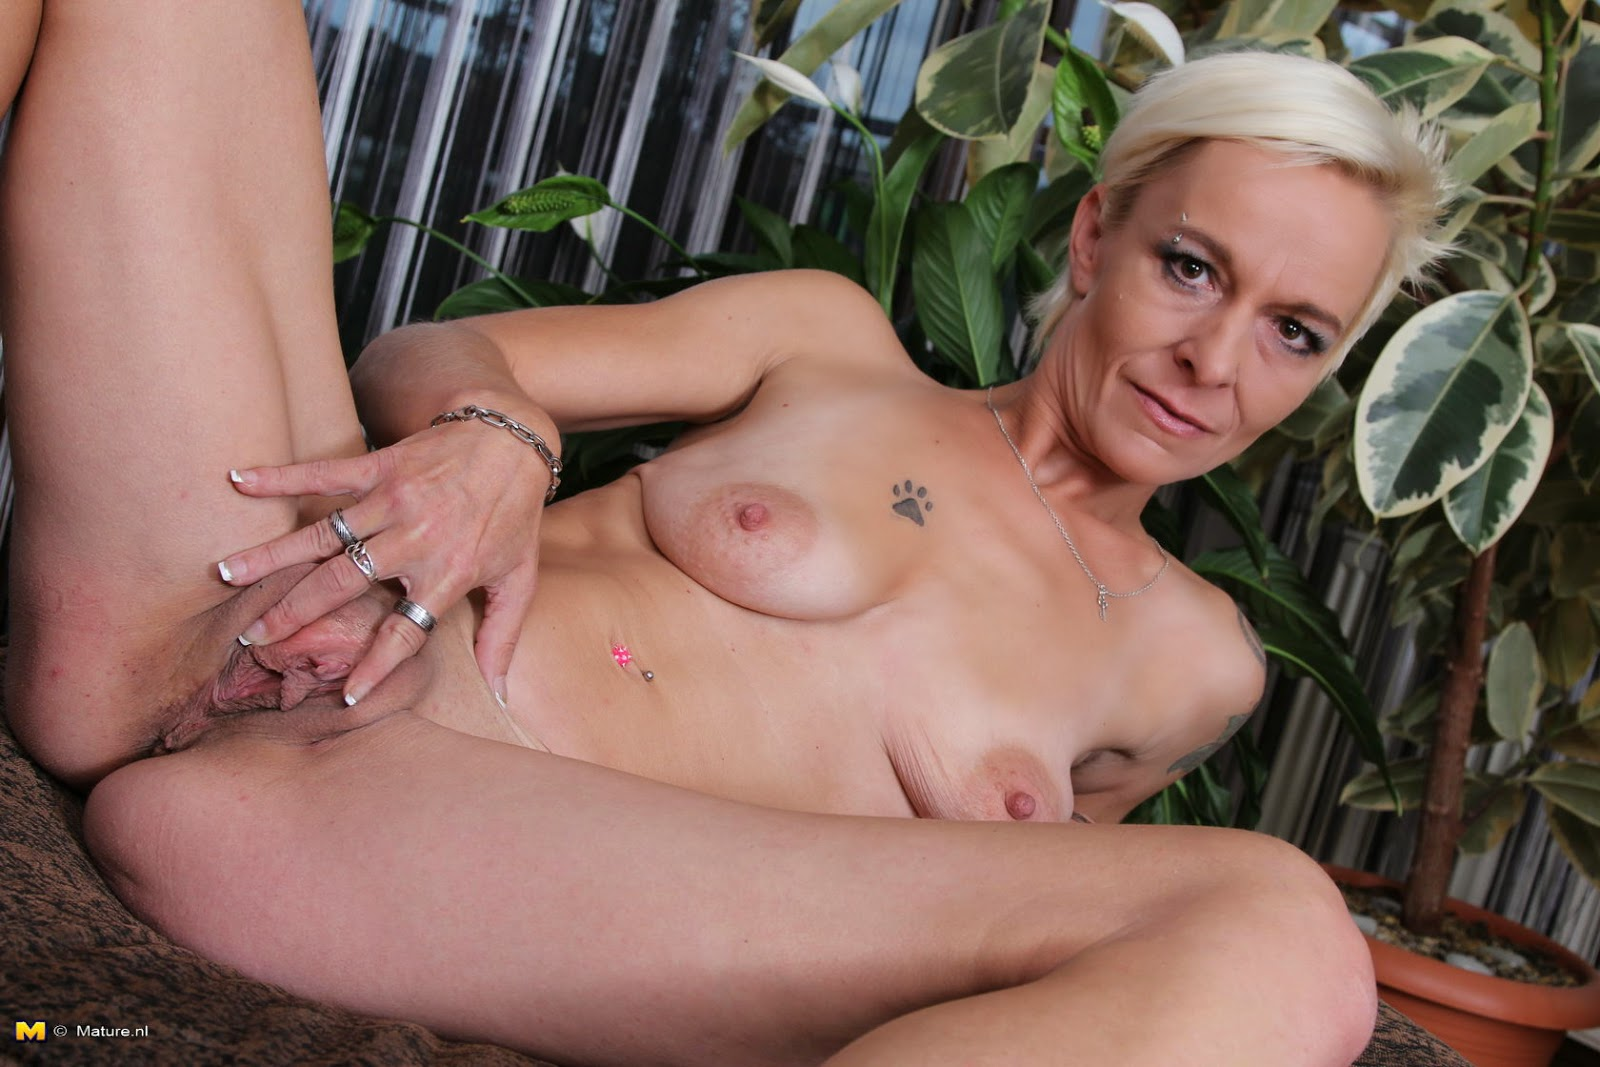 Mature Skinny Naked Women